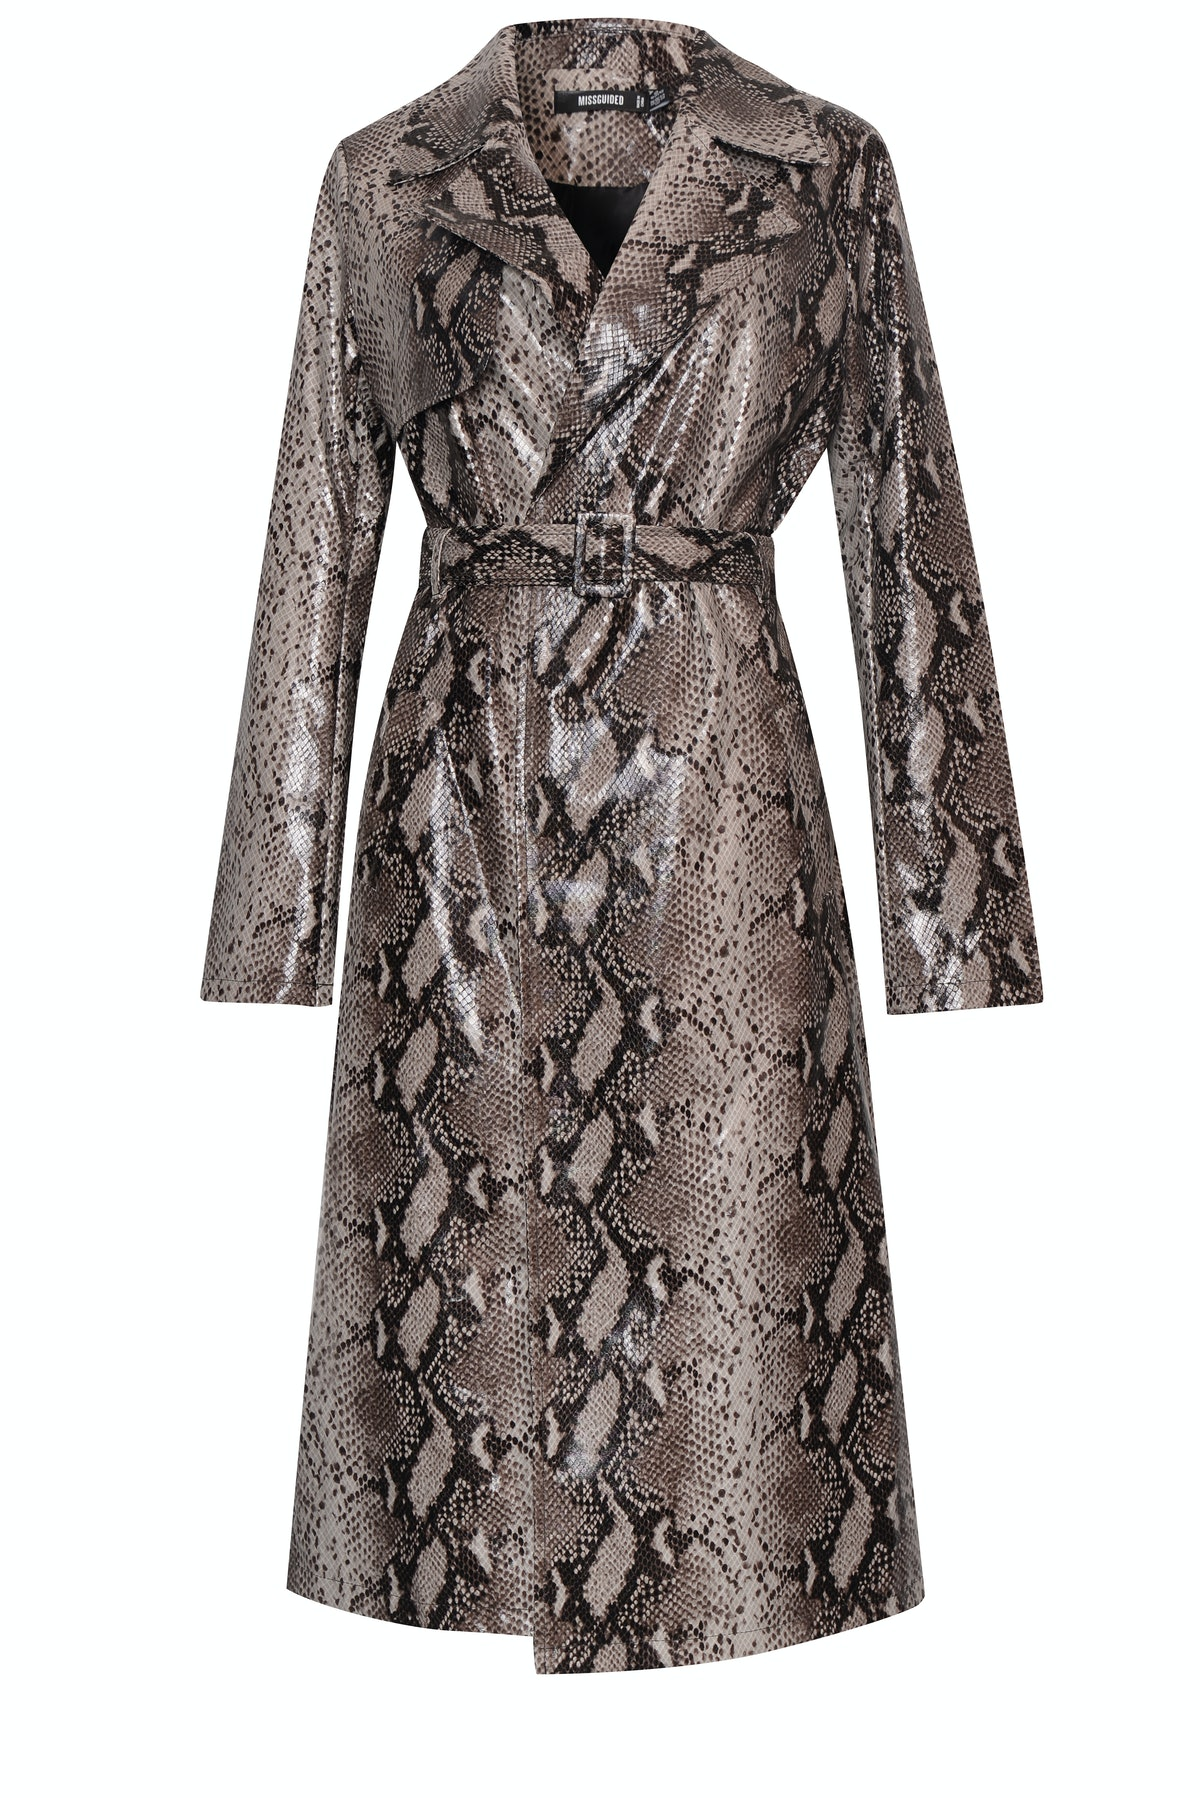 Sofia x Missguided Snake Print Trench Coat